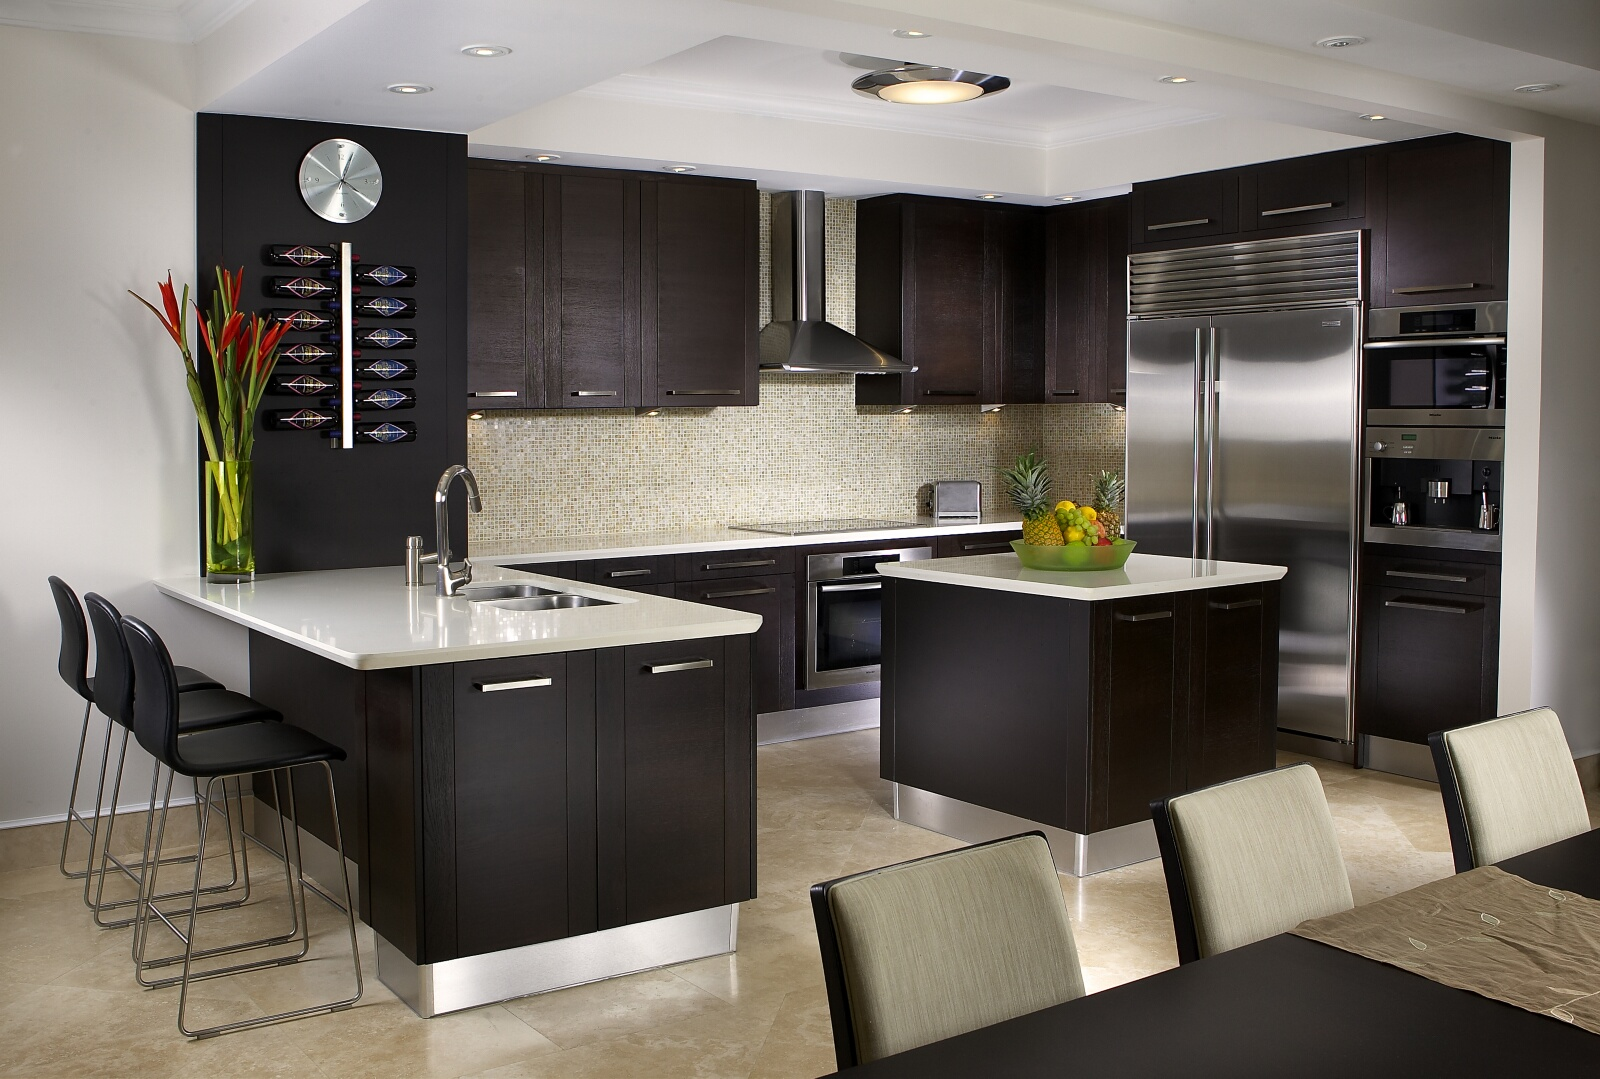 Kitchen interior design services miami florida for Kitchen room interior design